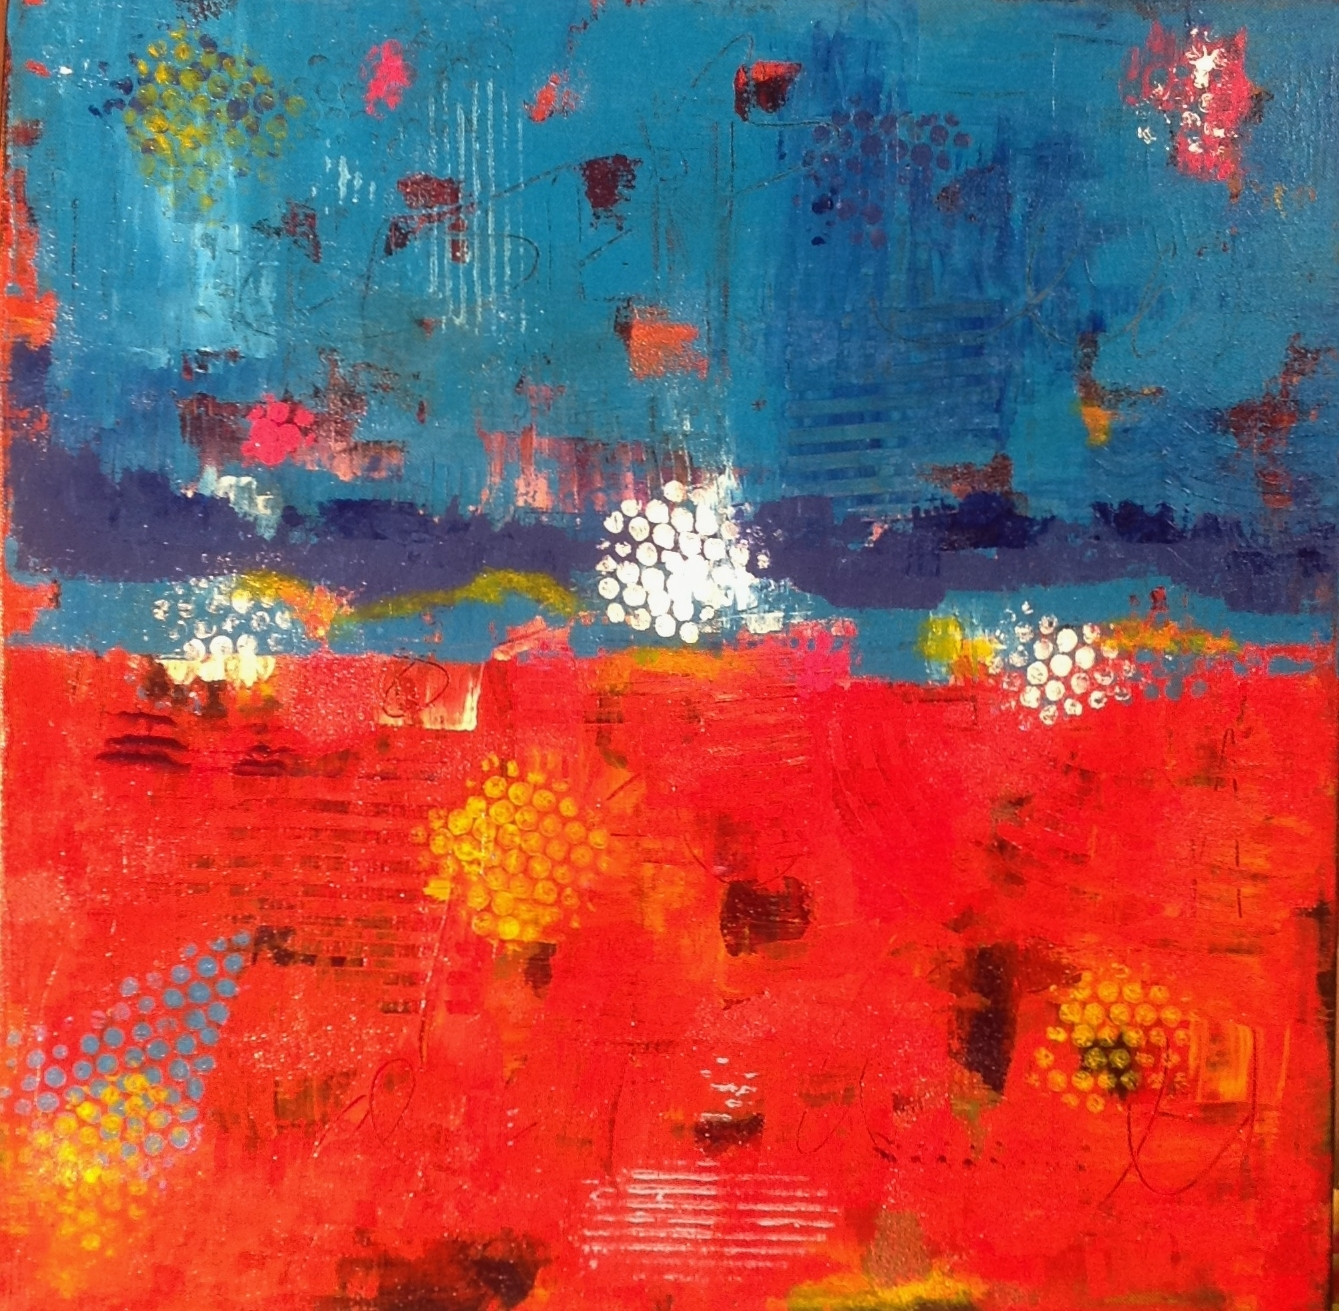 Blue over Red (2013)